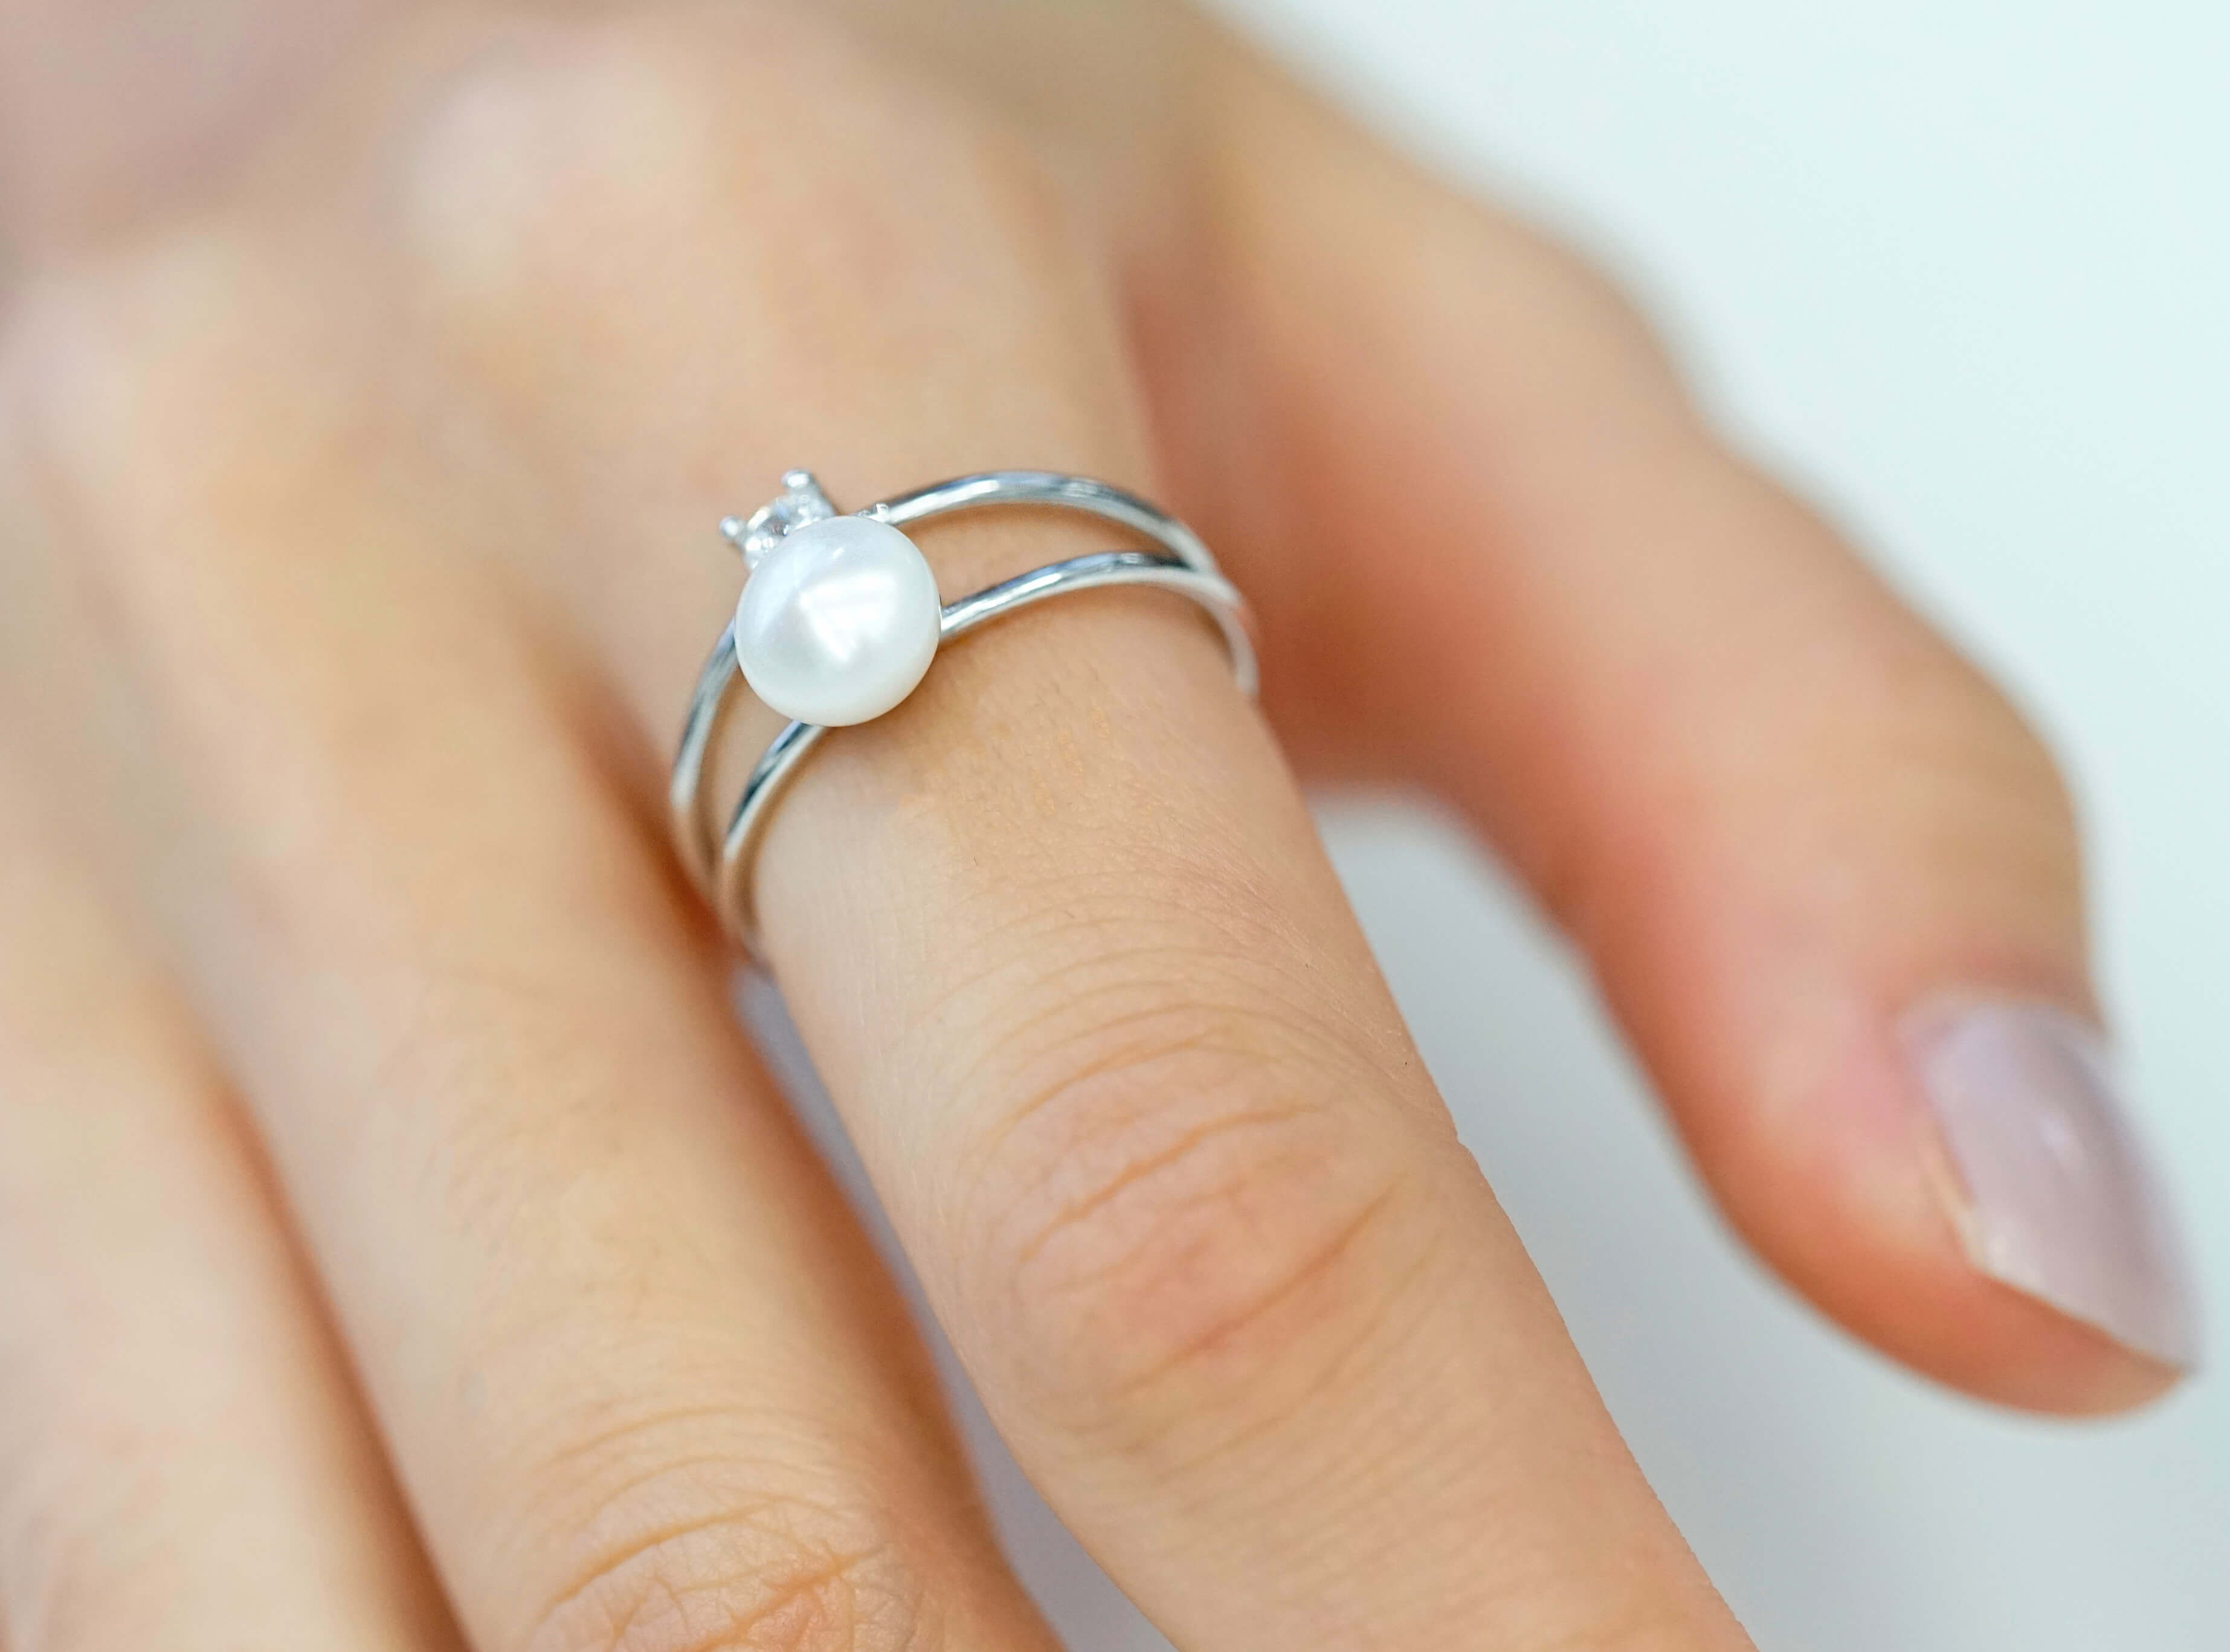 Pearl engagement ring